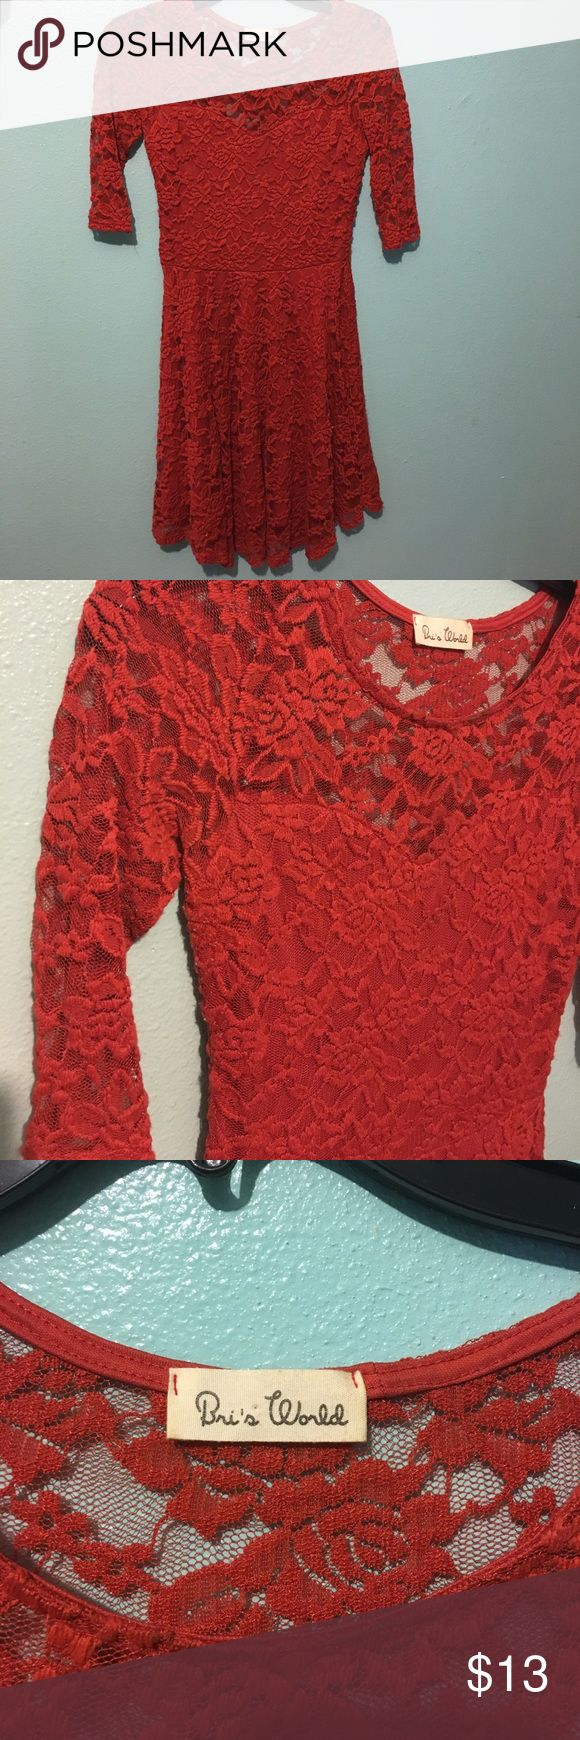 Dark Orange Lace Dress Worn Once, in perfect condition Bri's World Dresses